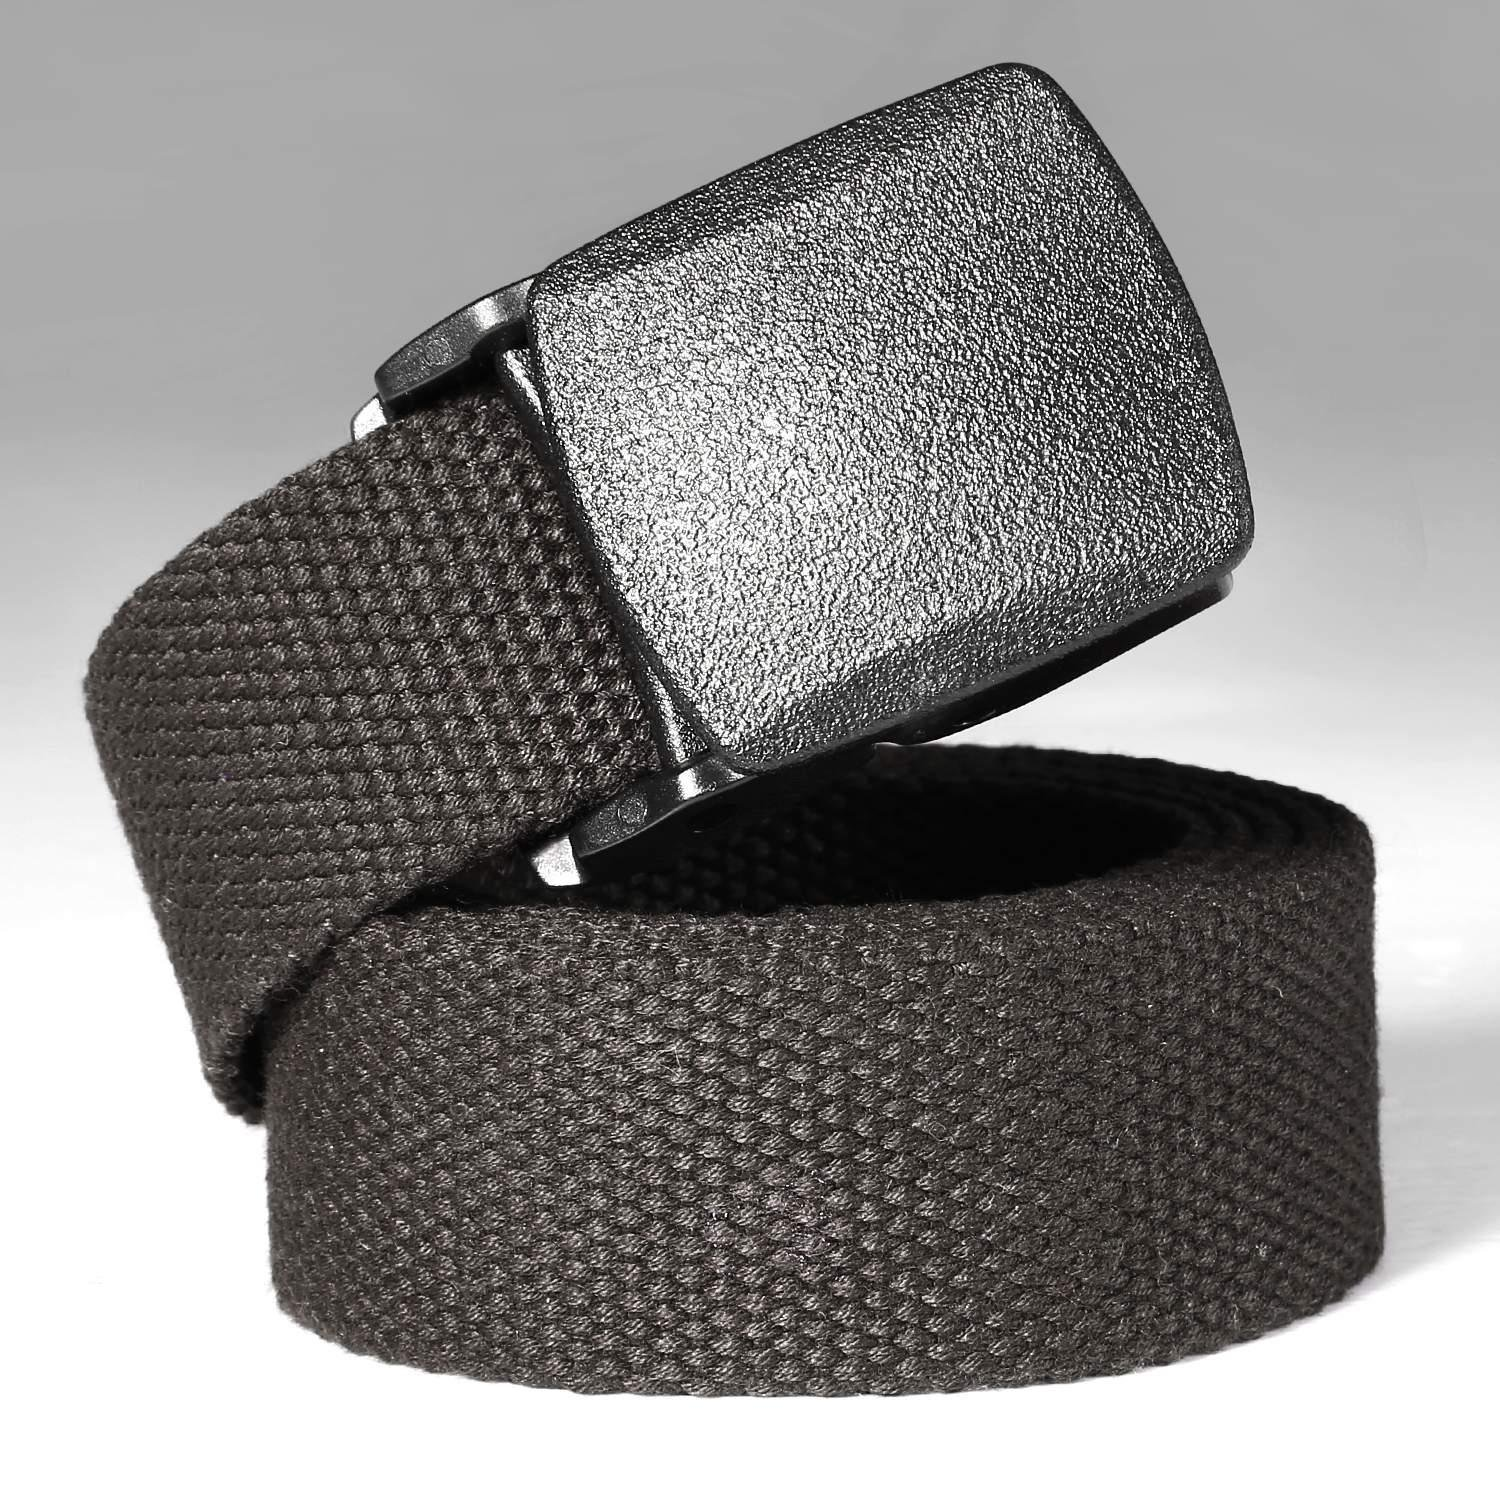 Nylon Canvas Breathable Utility Military Tactical Men Waist Belt With Plastic Buckle Tactical Belt for Men